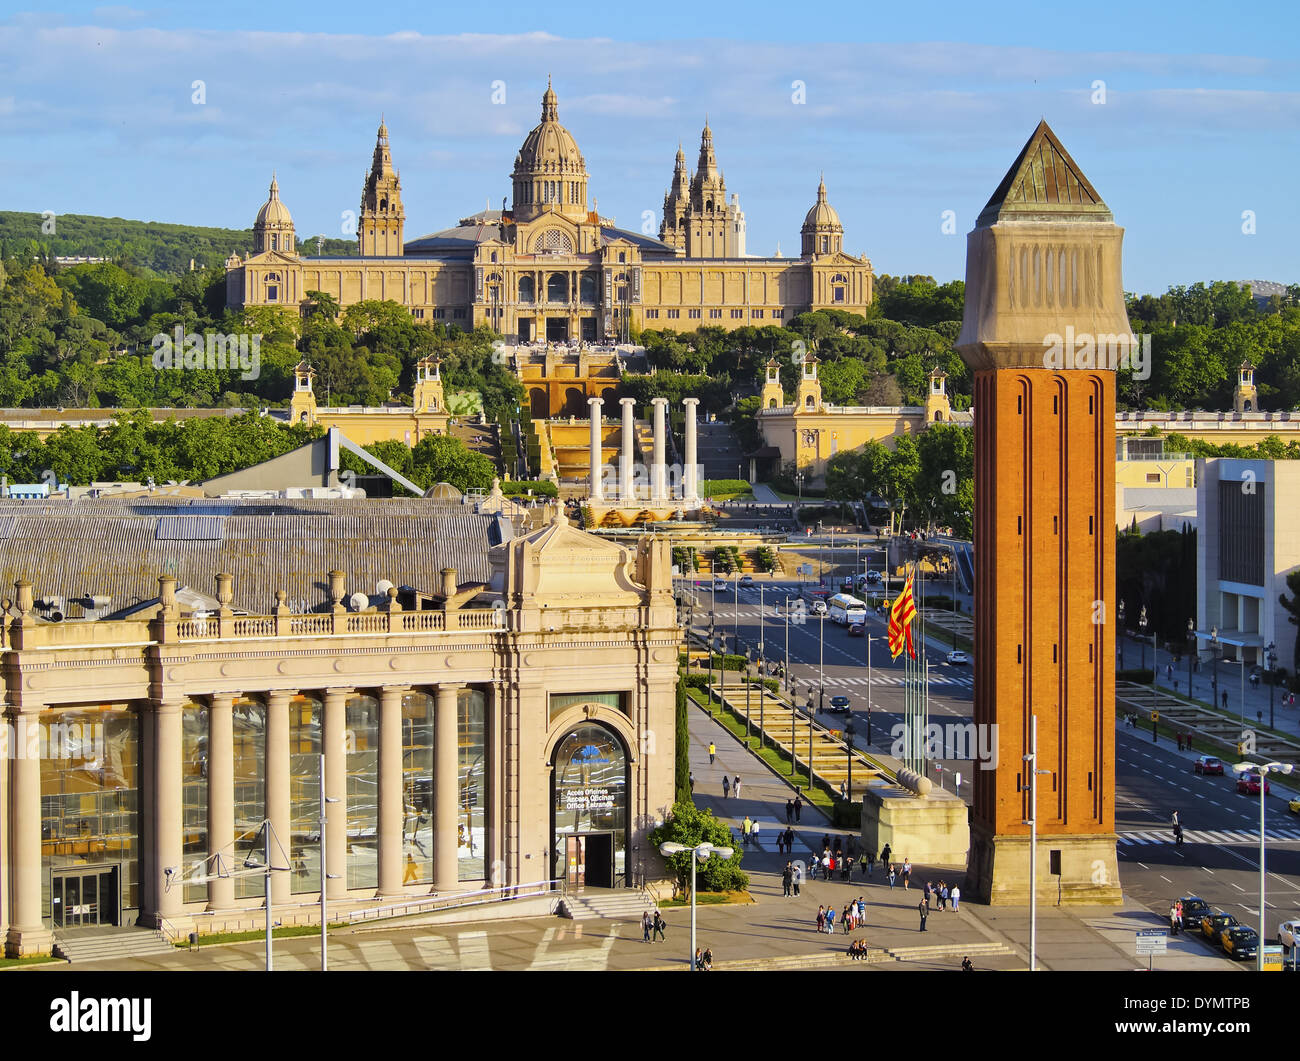 MNAC - National Museum of Art in Barcelona, Catalonia, Spain - Stock Image